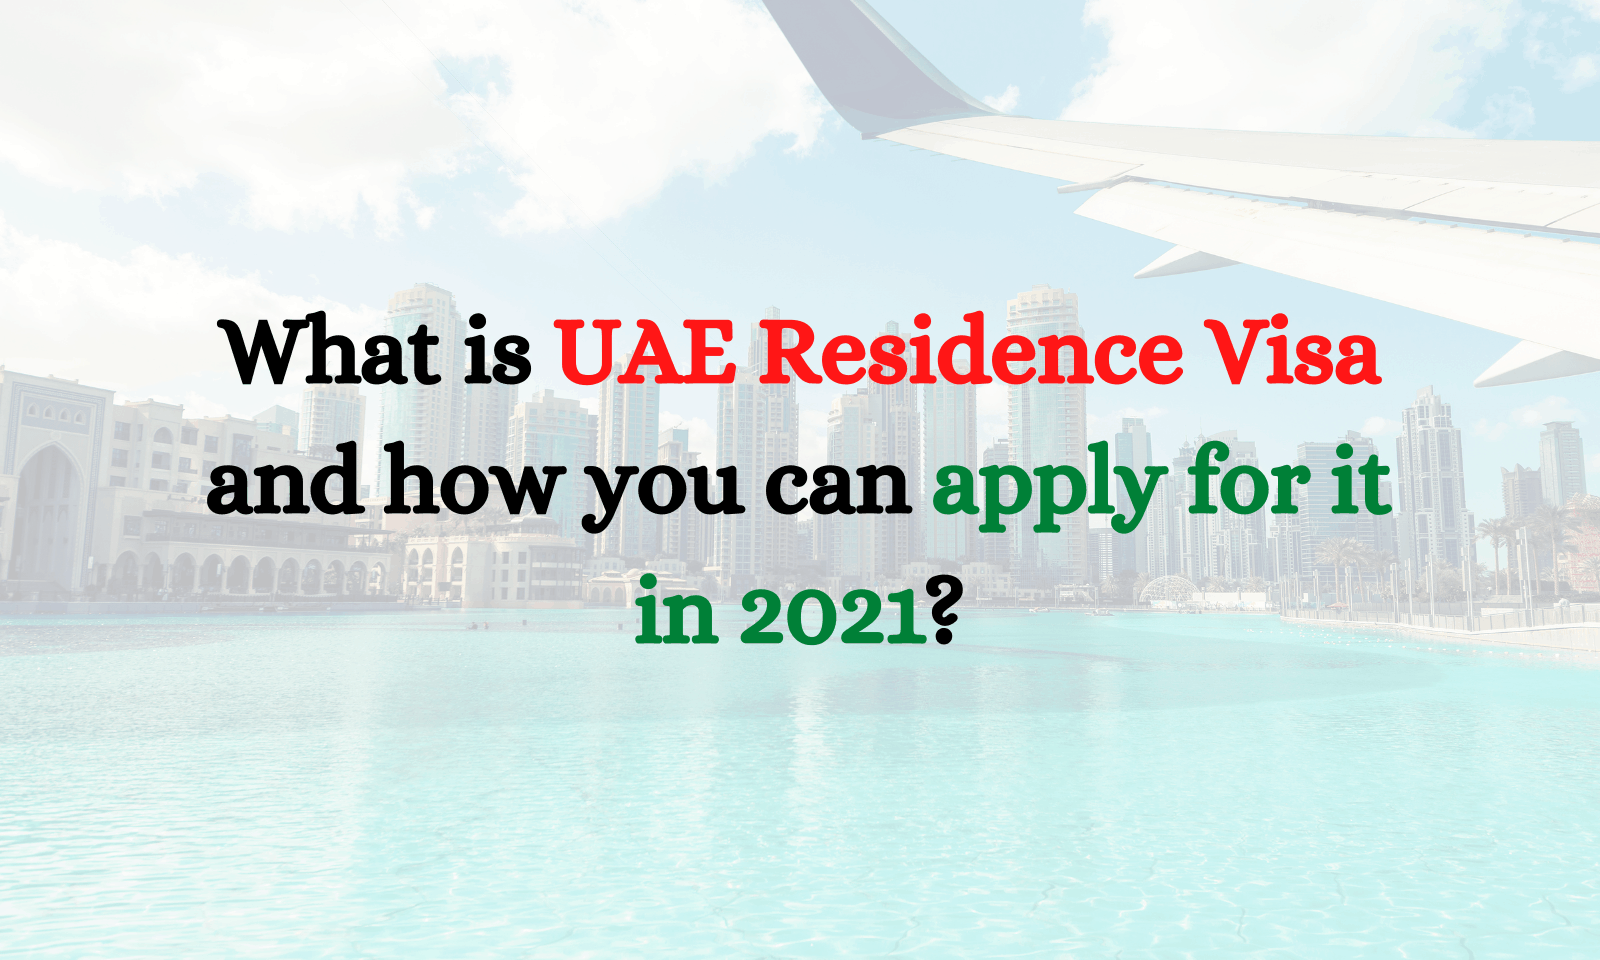 What is UAE Residence Visa and how you can apply for it in 2021